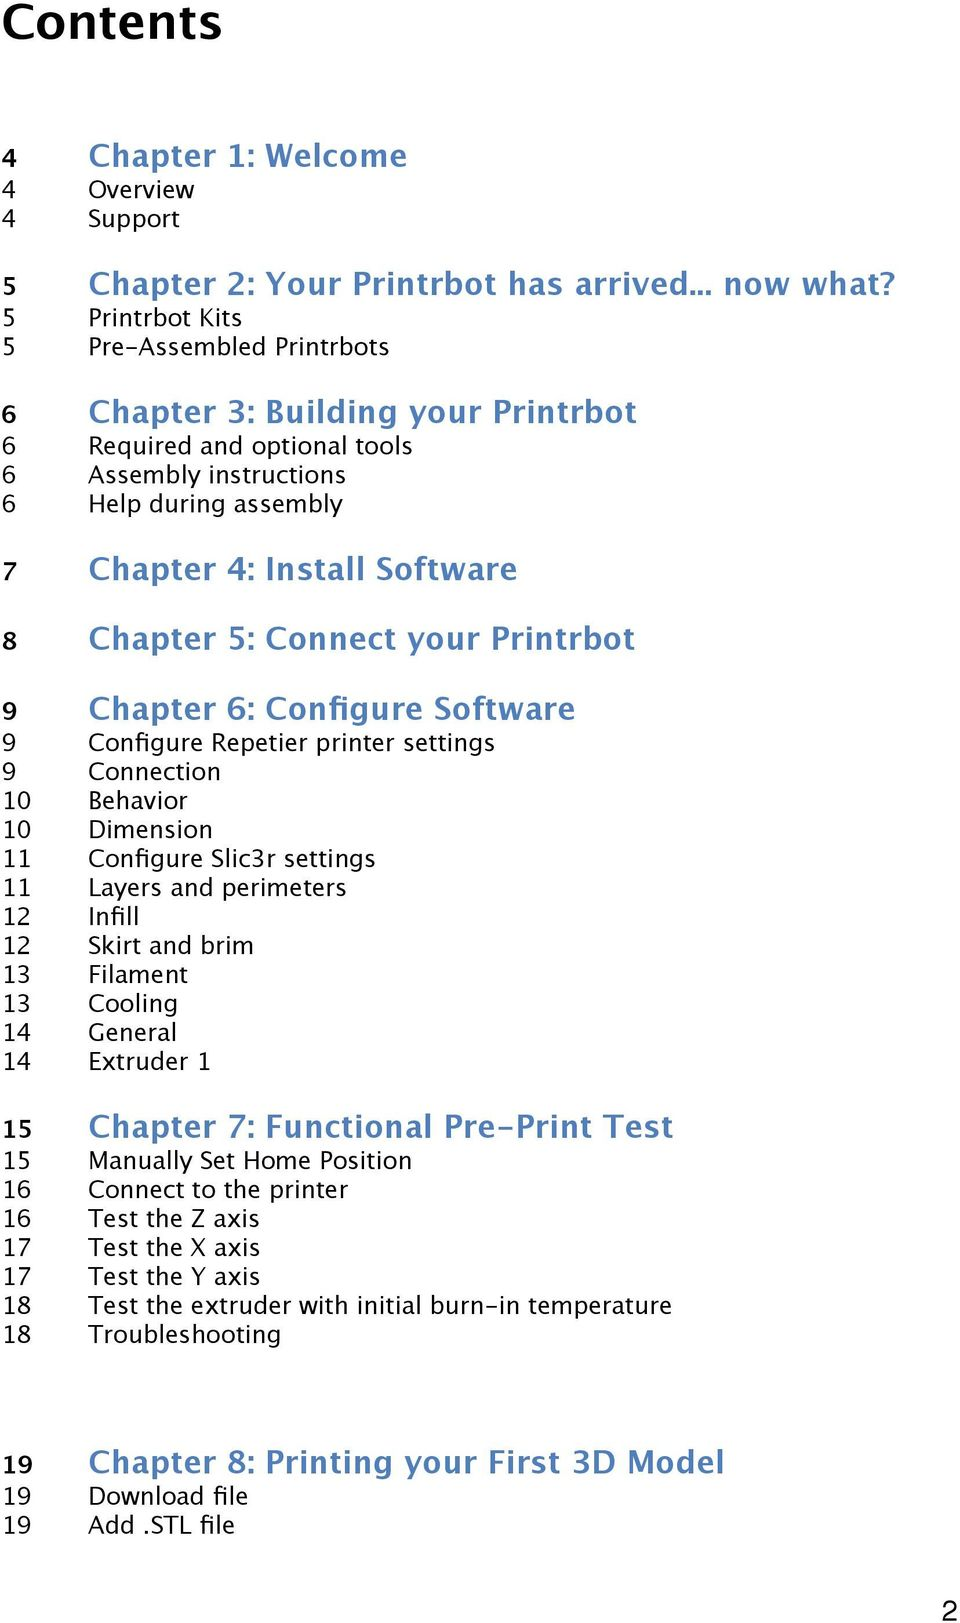 Printrbot Getting Started Guide  For models: Simple - PDF